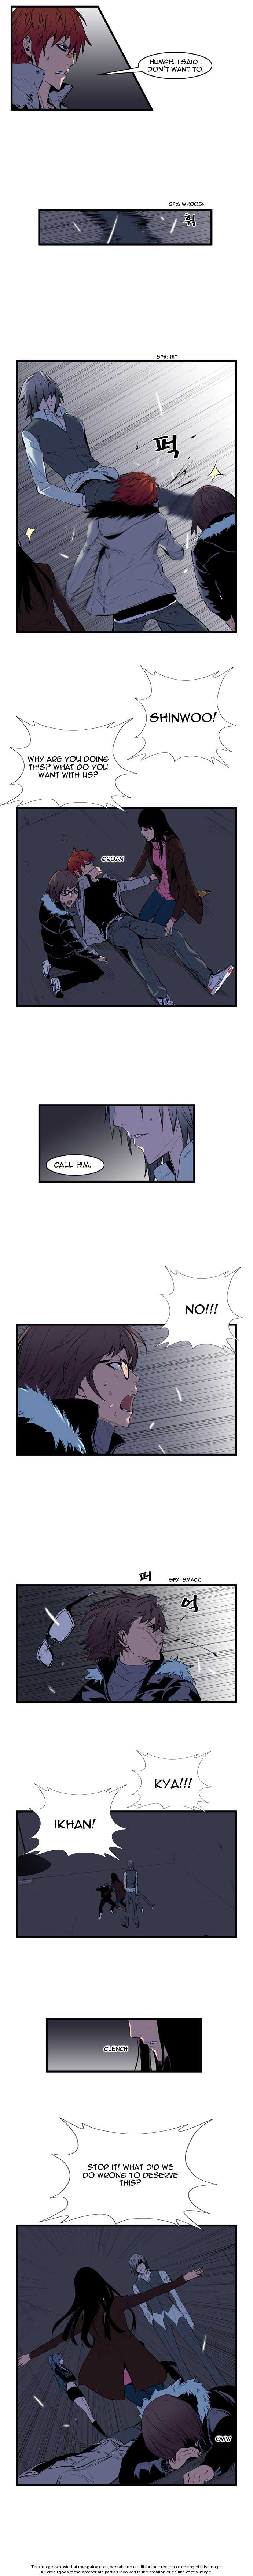 Noblesse 67 Page 3